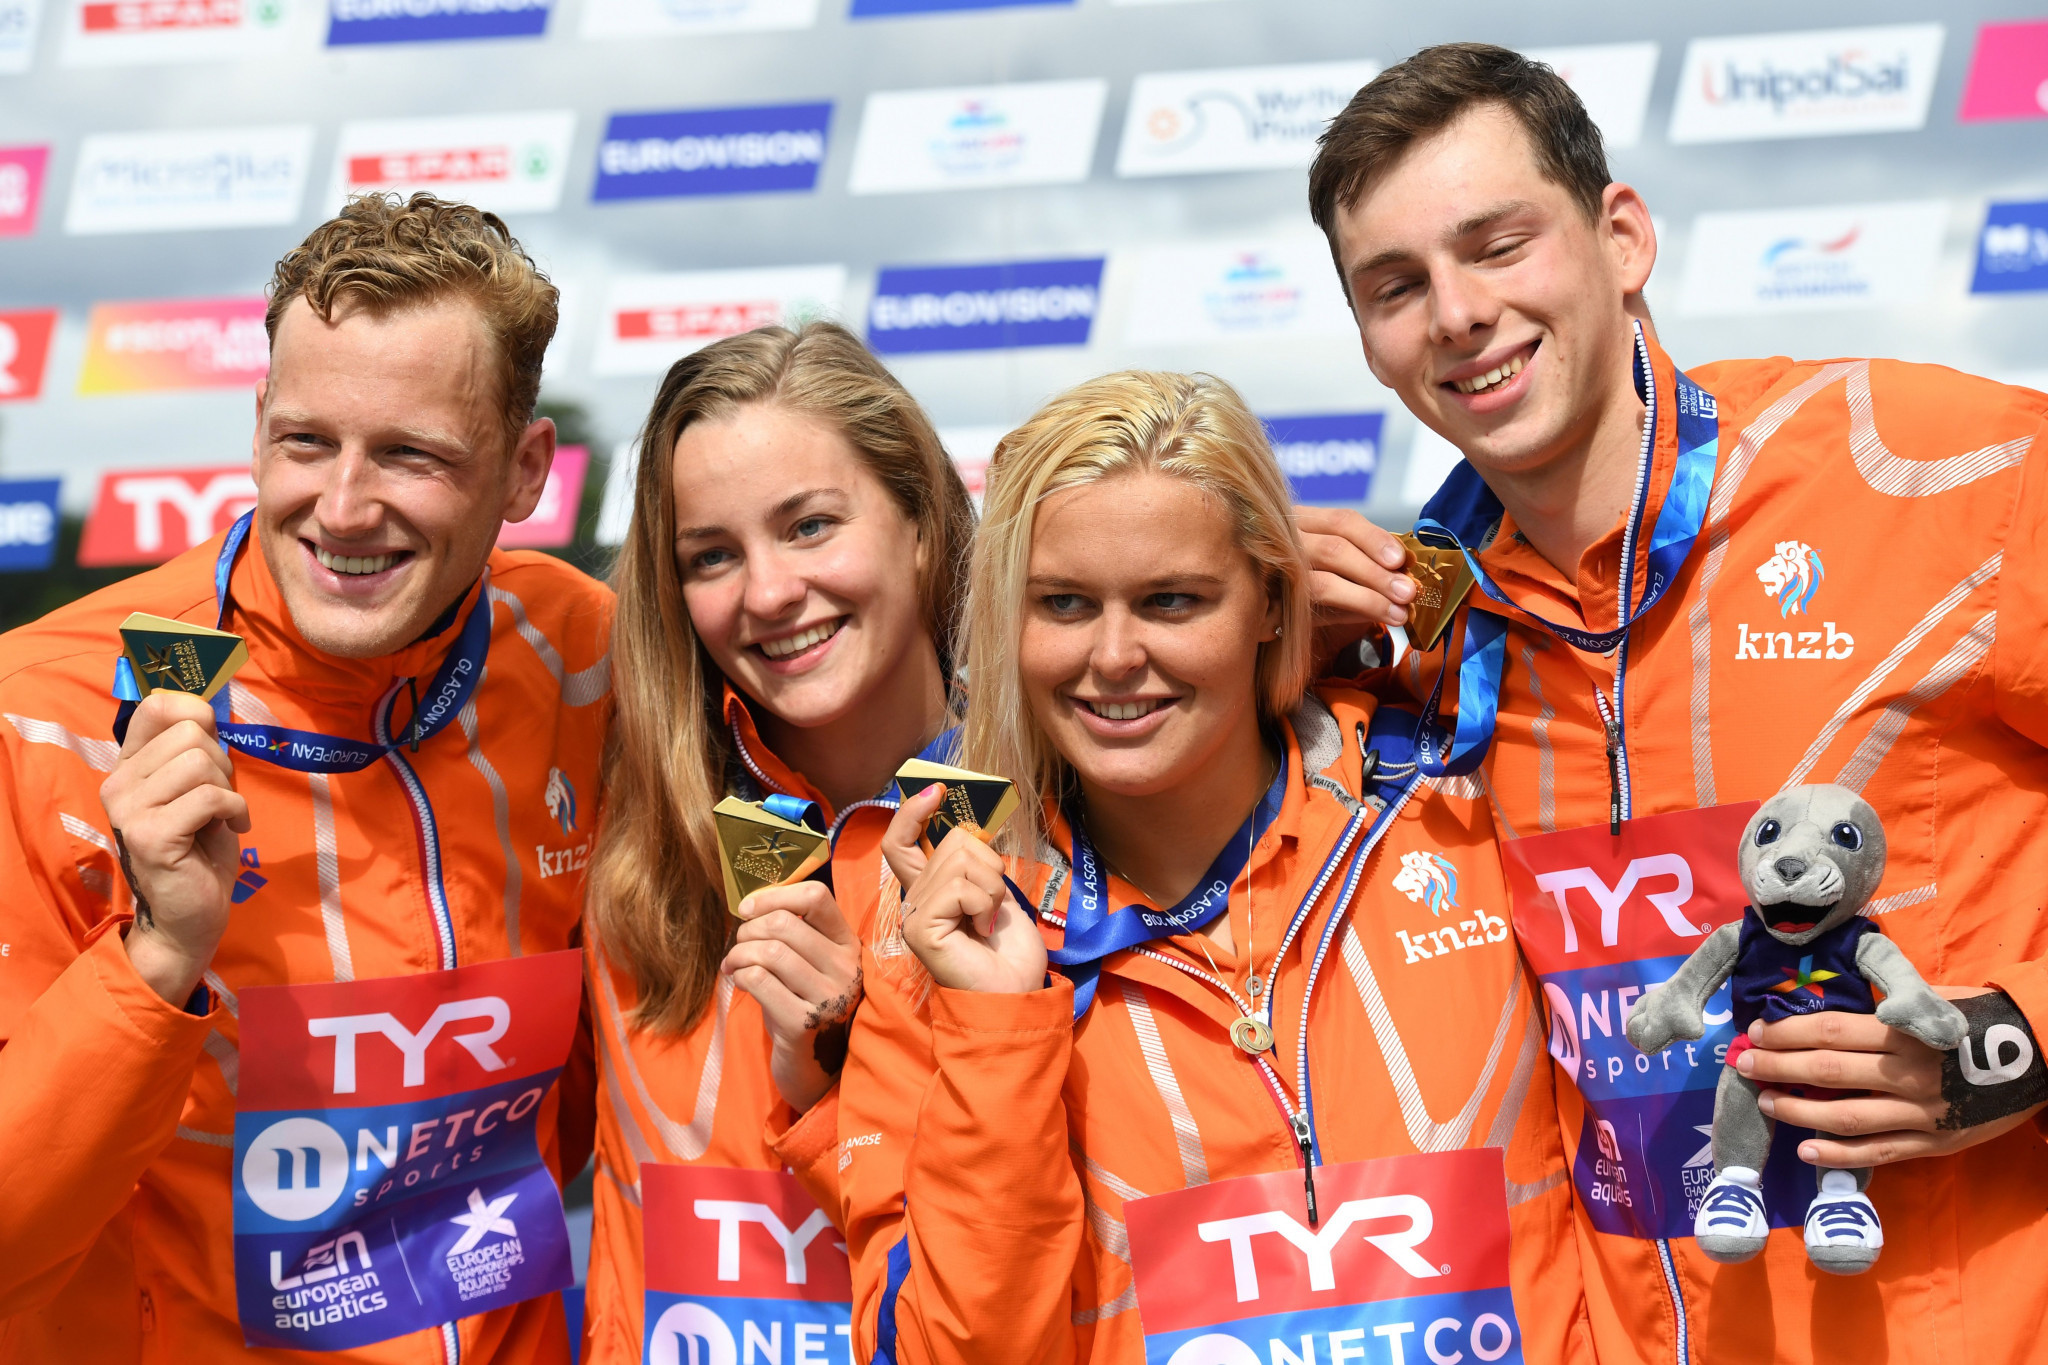 Dutch domination of open water swimming continues with mixed relay title at European Championships